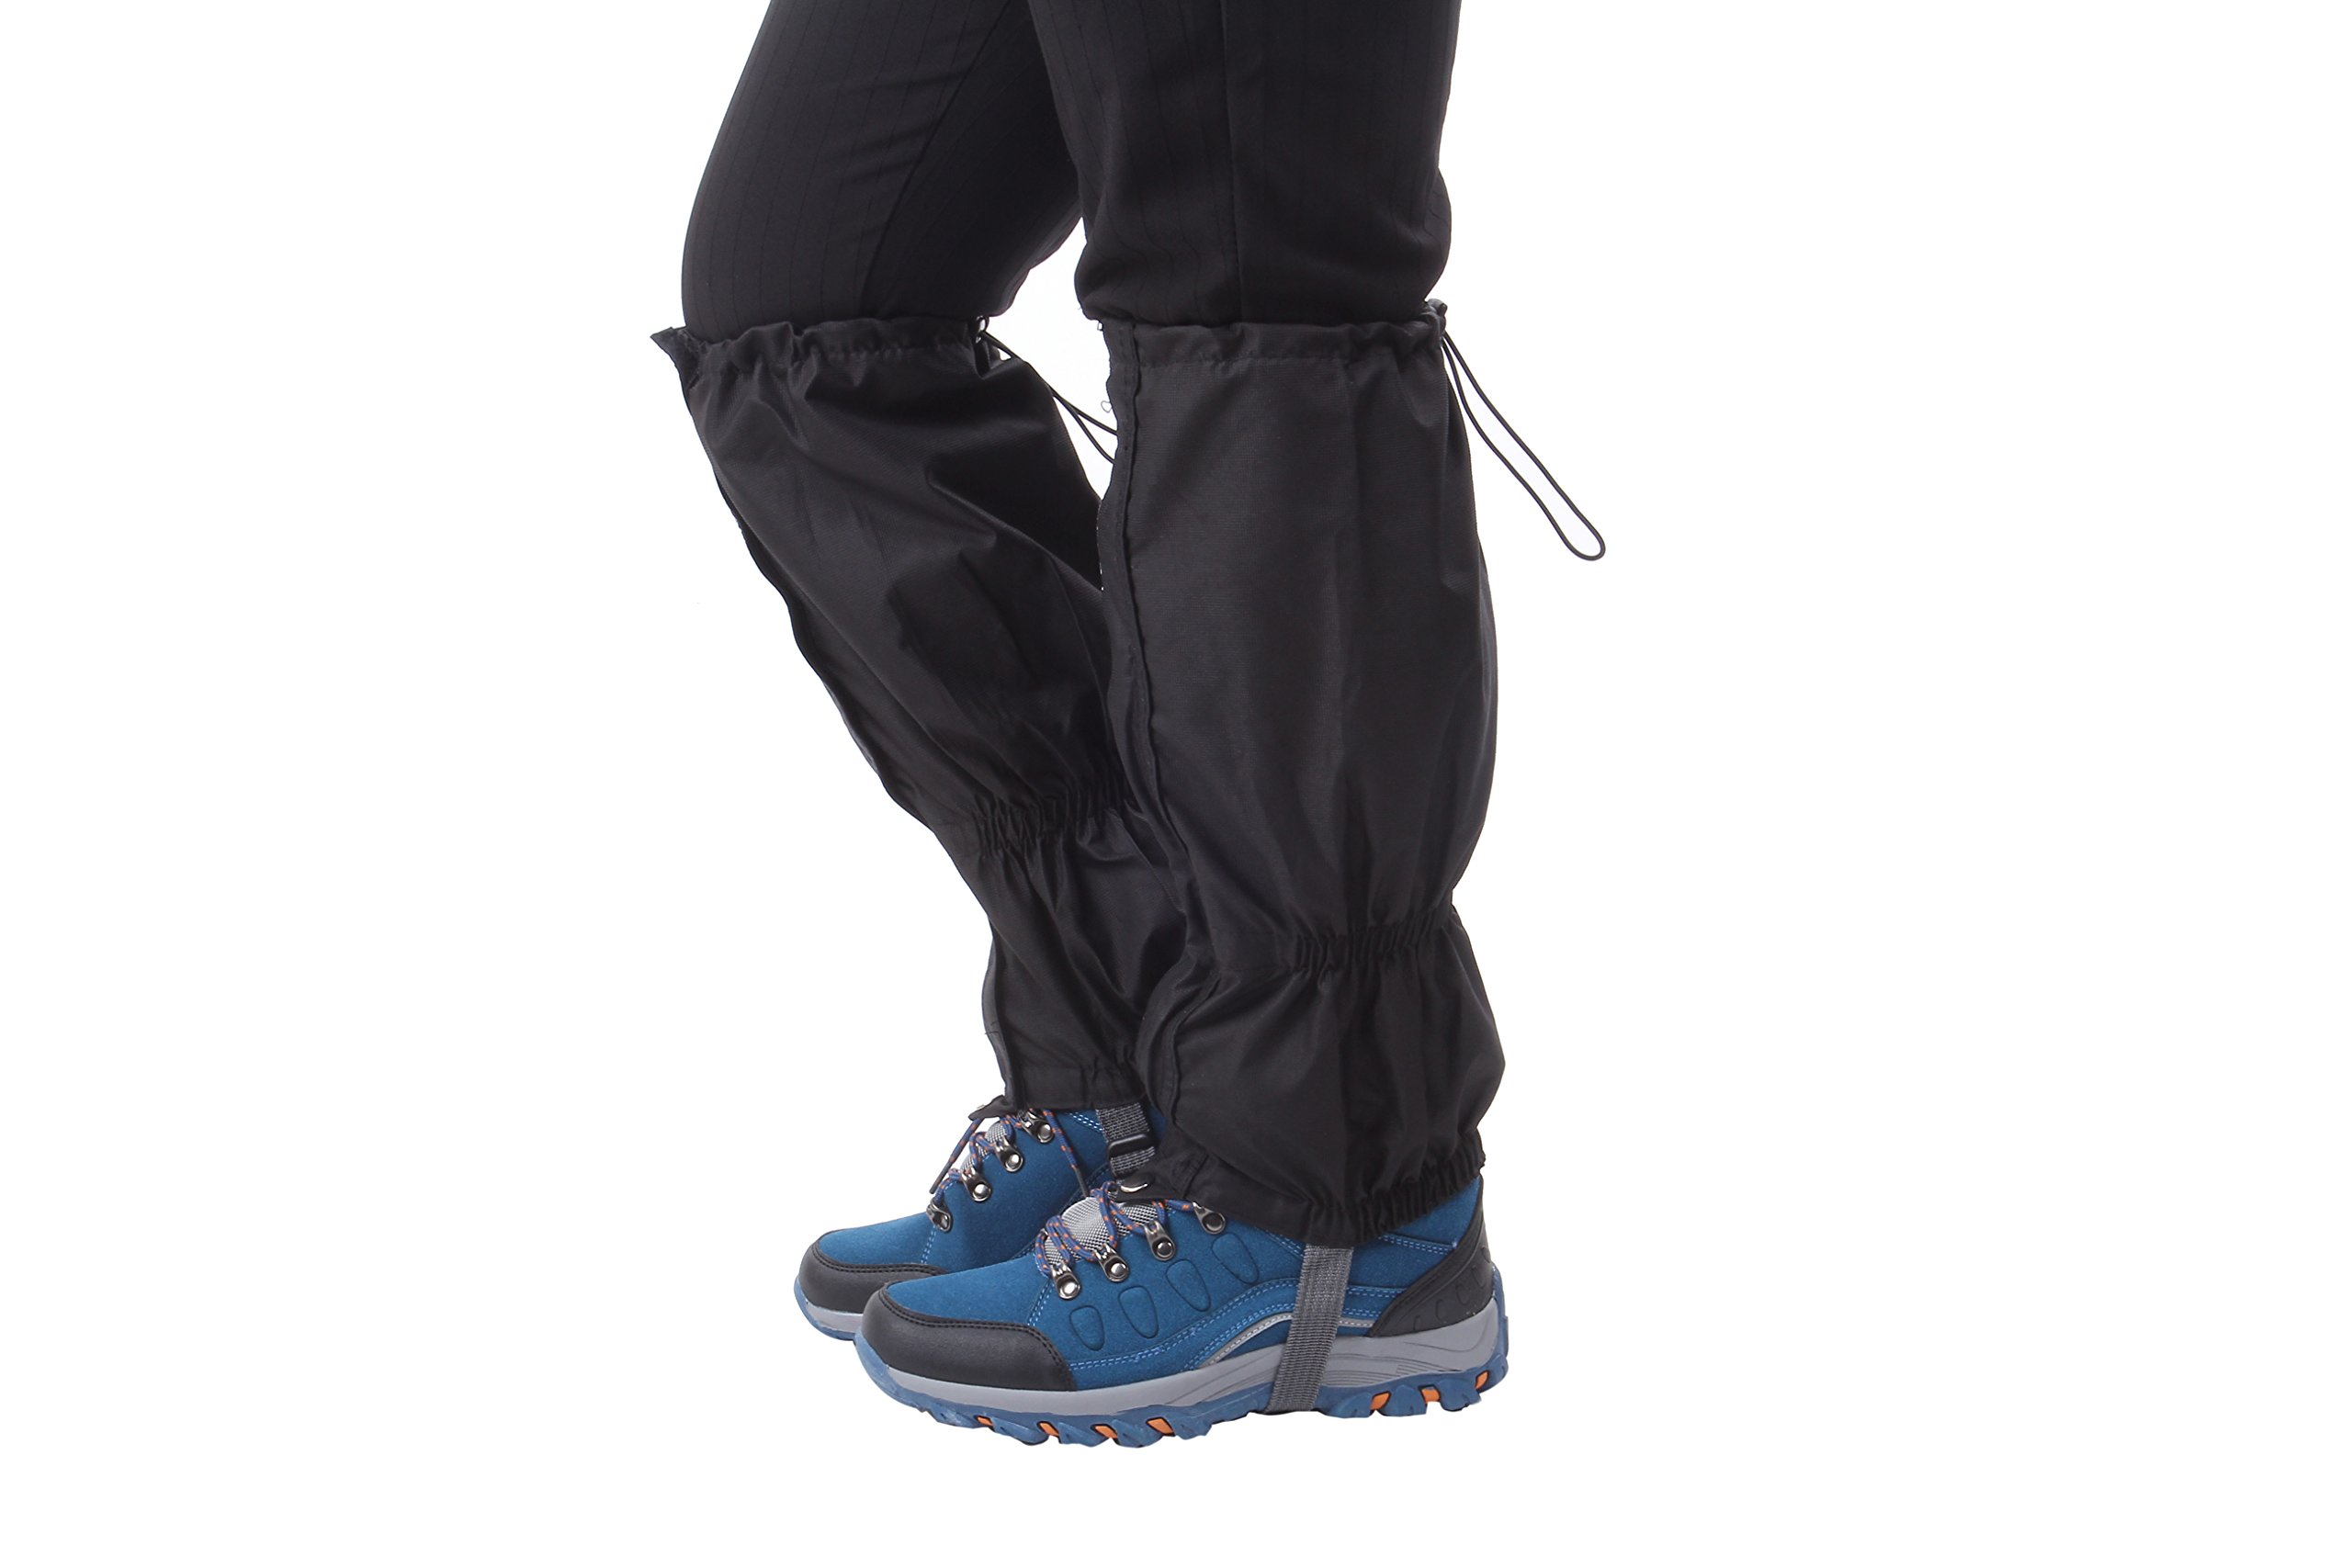 Macks.i Outdoor Unisex Waterproof Camping Hiking Gaiters High Leg Cover 1pair with a Free Shoe Bag by Macks.i (Image #8)